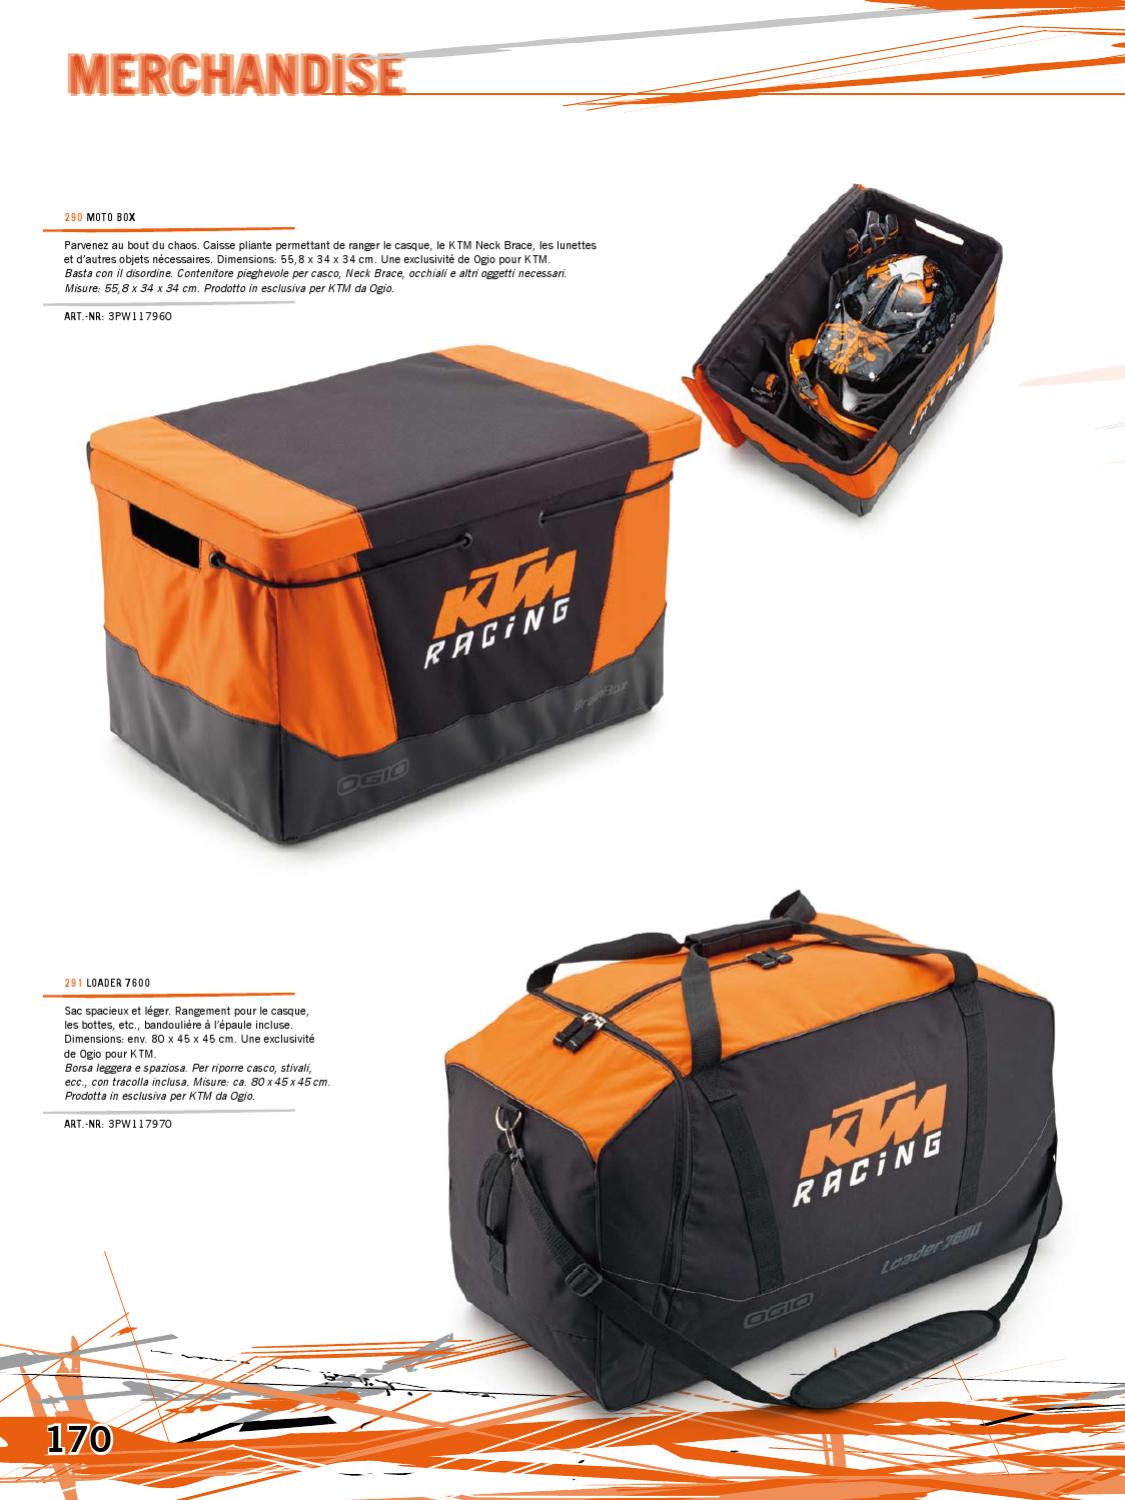 ktm powerwear 2011 catalog 2011 by ktm sportmotorcycle gmbh issuu. Black Bedroom Furniture Sets. Home Design Ideas